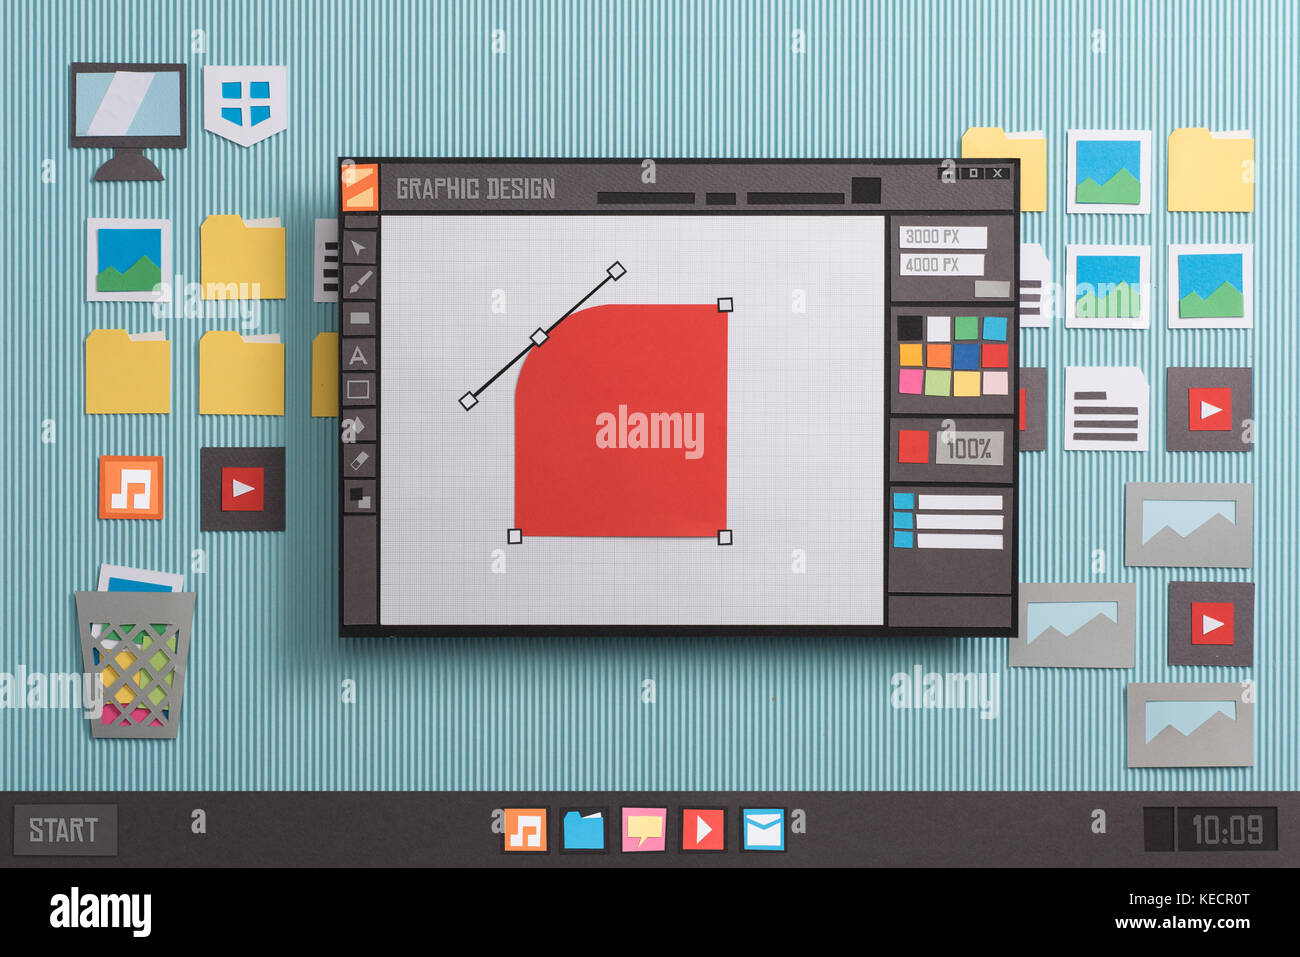 Graphic design and vector illustration software interface